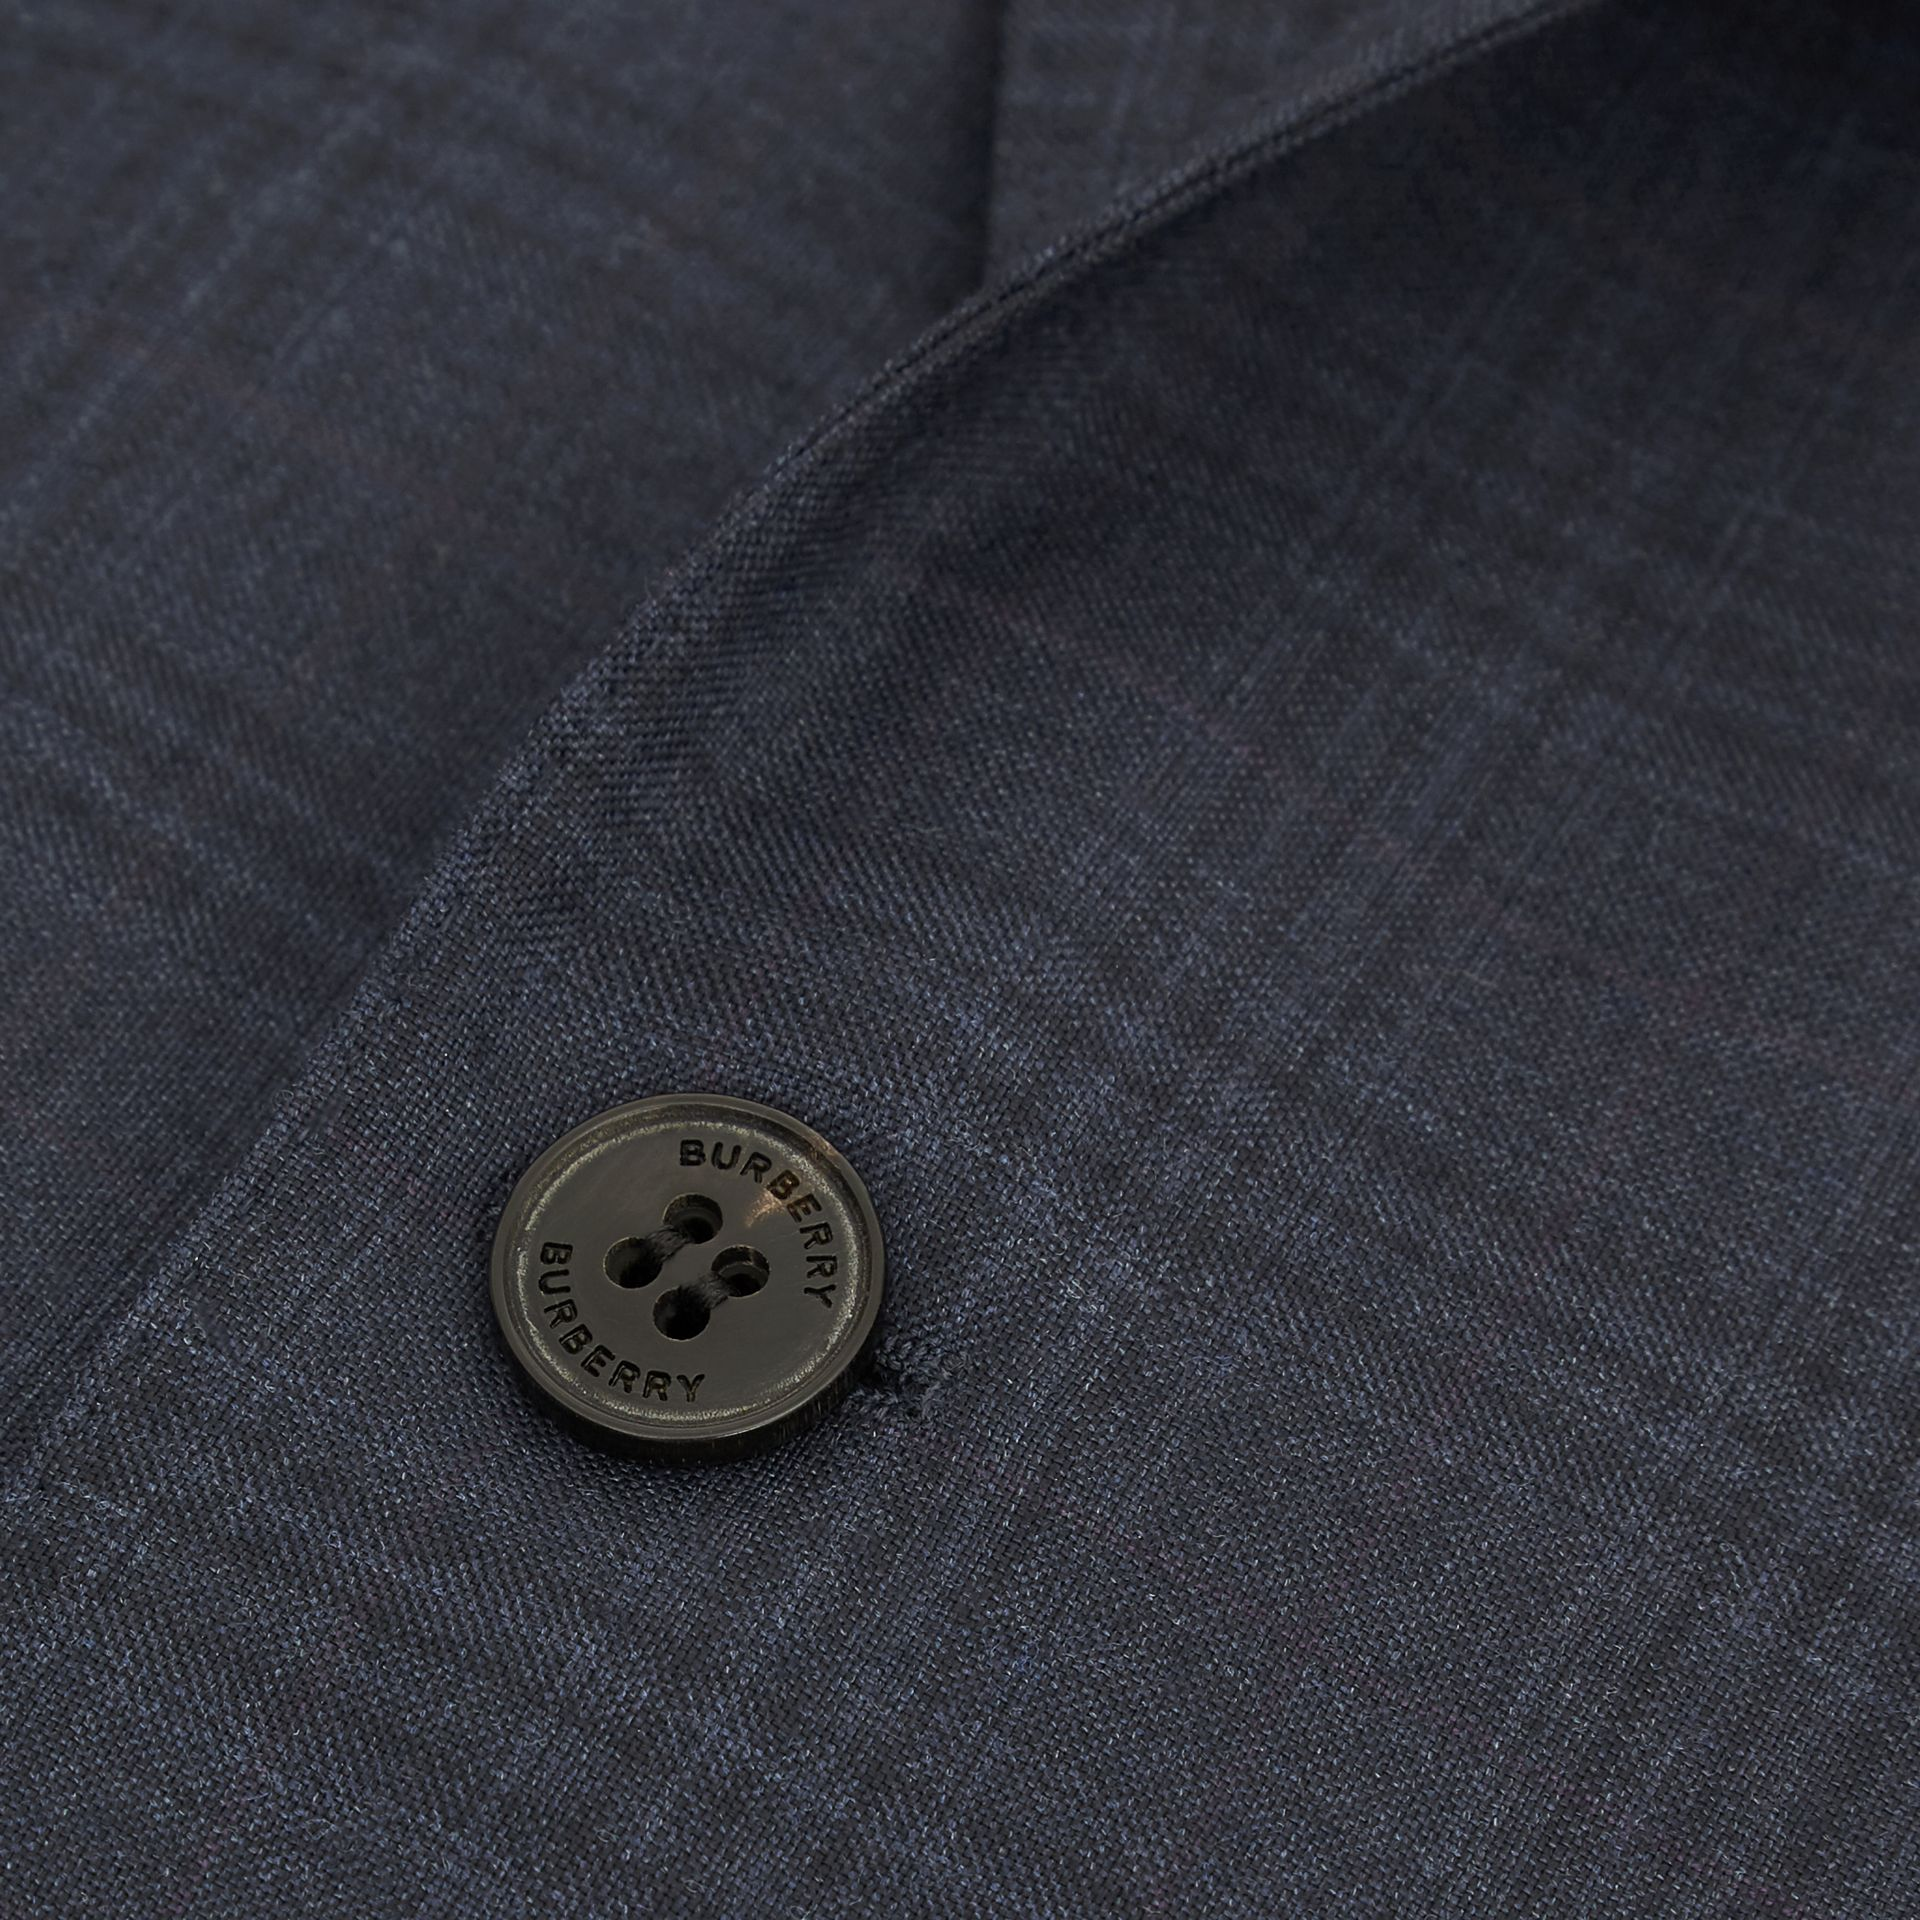 Classic Fit Windowpane Check Wool Suit in Uniform Blue - Men | Burberry - gallery image 8